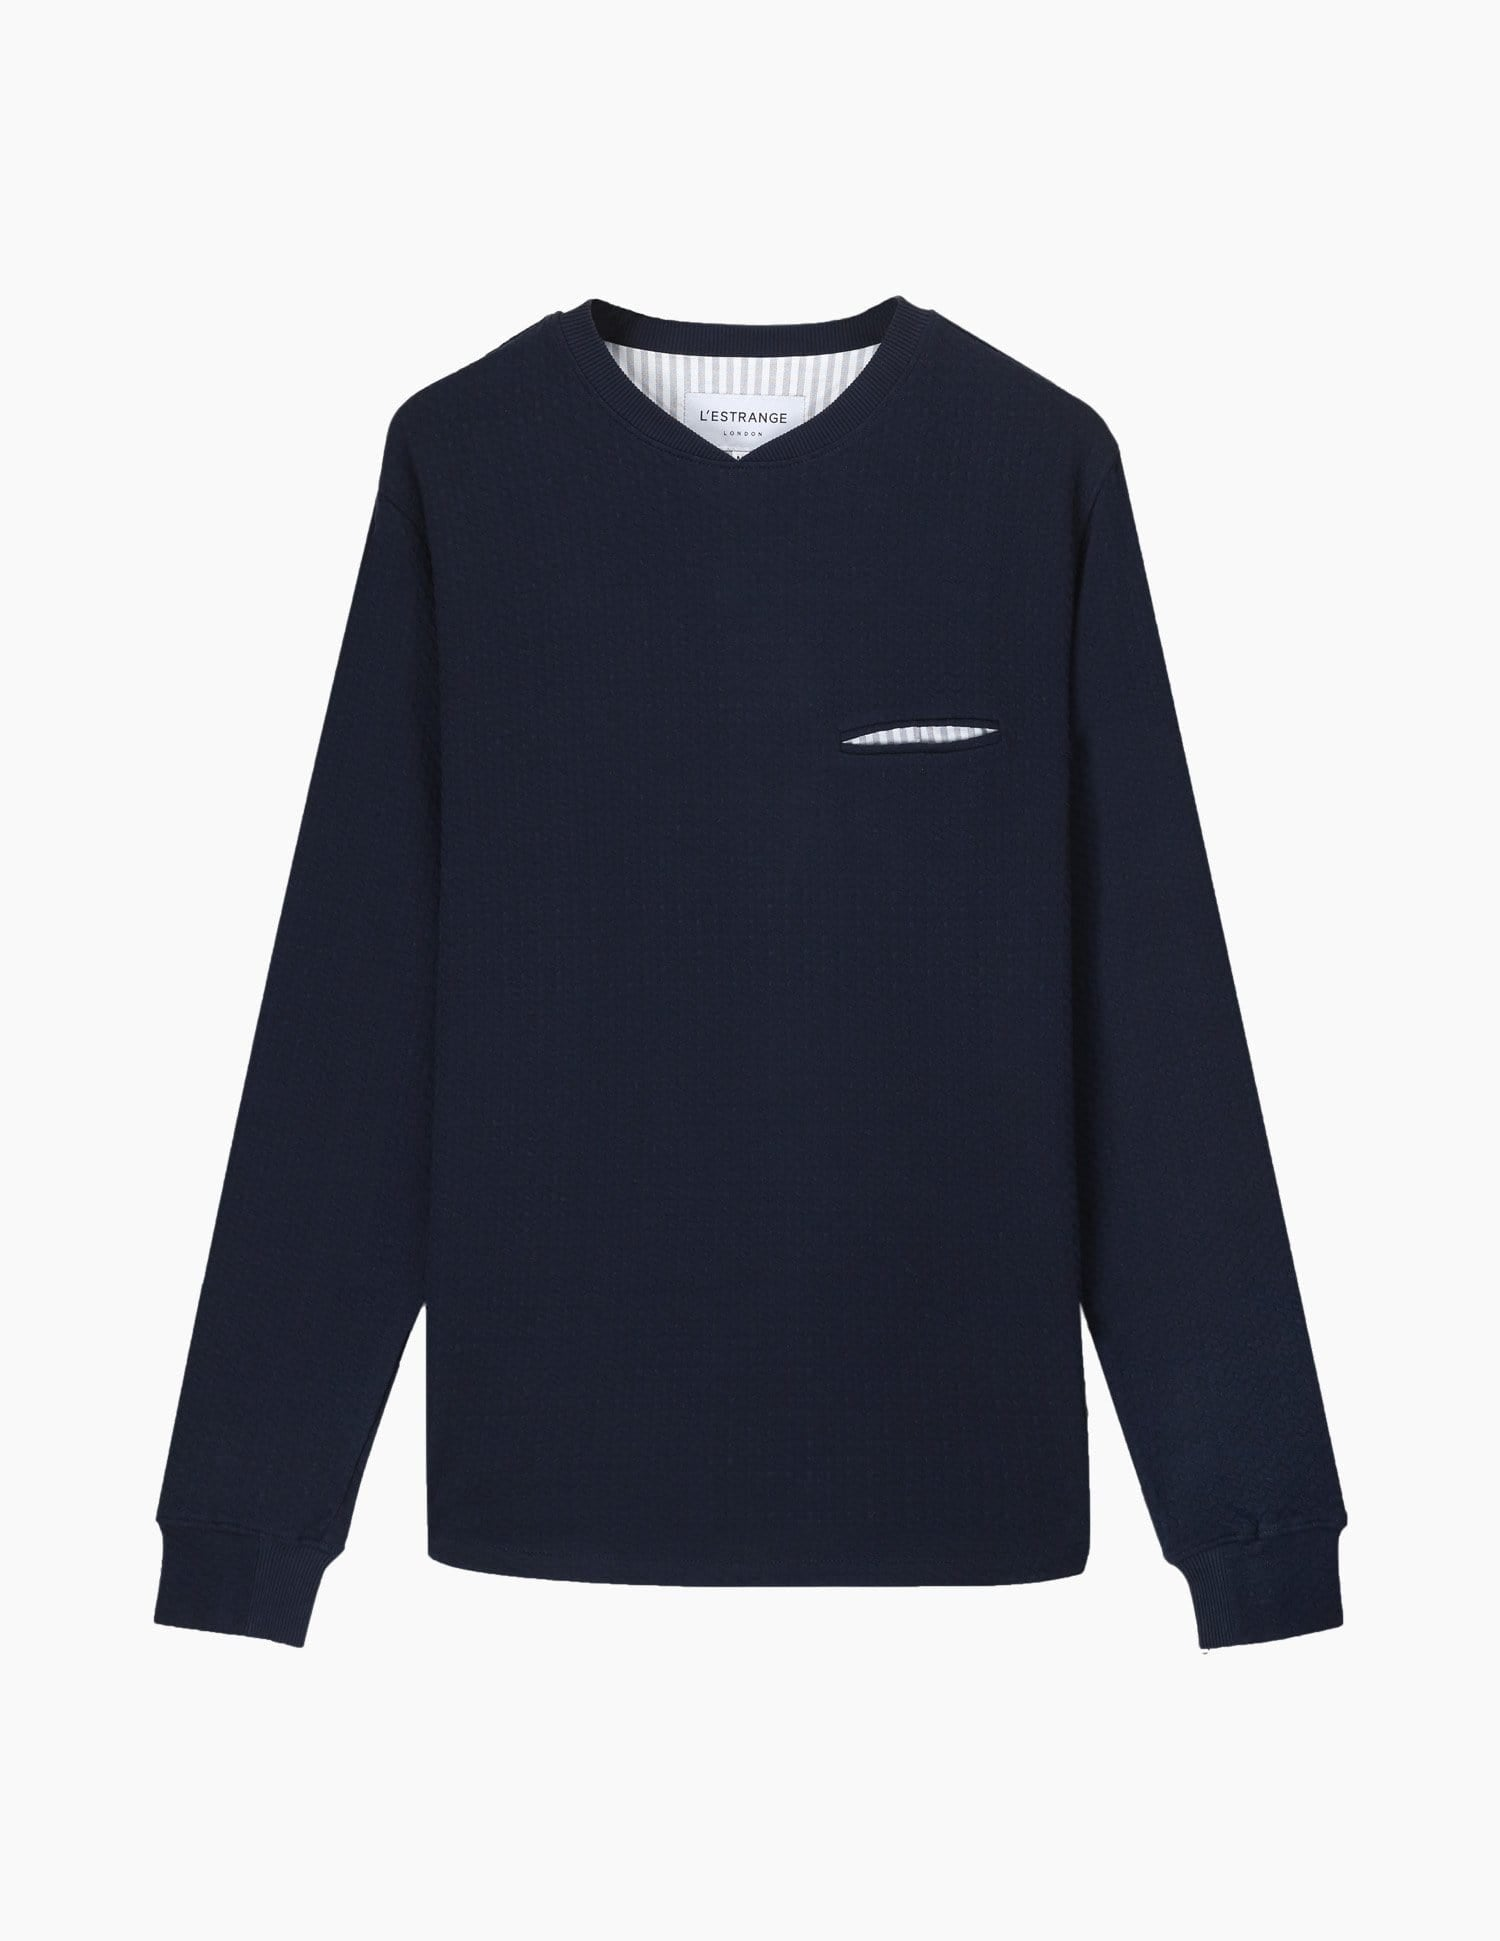 The Curve Sweatshirt || Navy | Jacquard Jersey